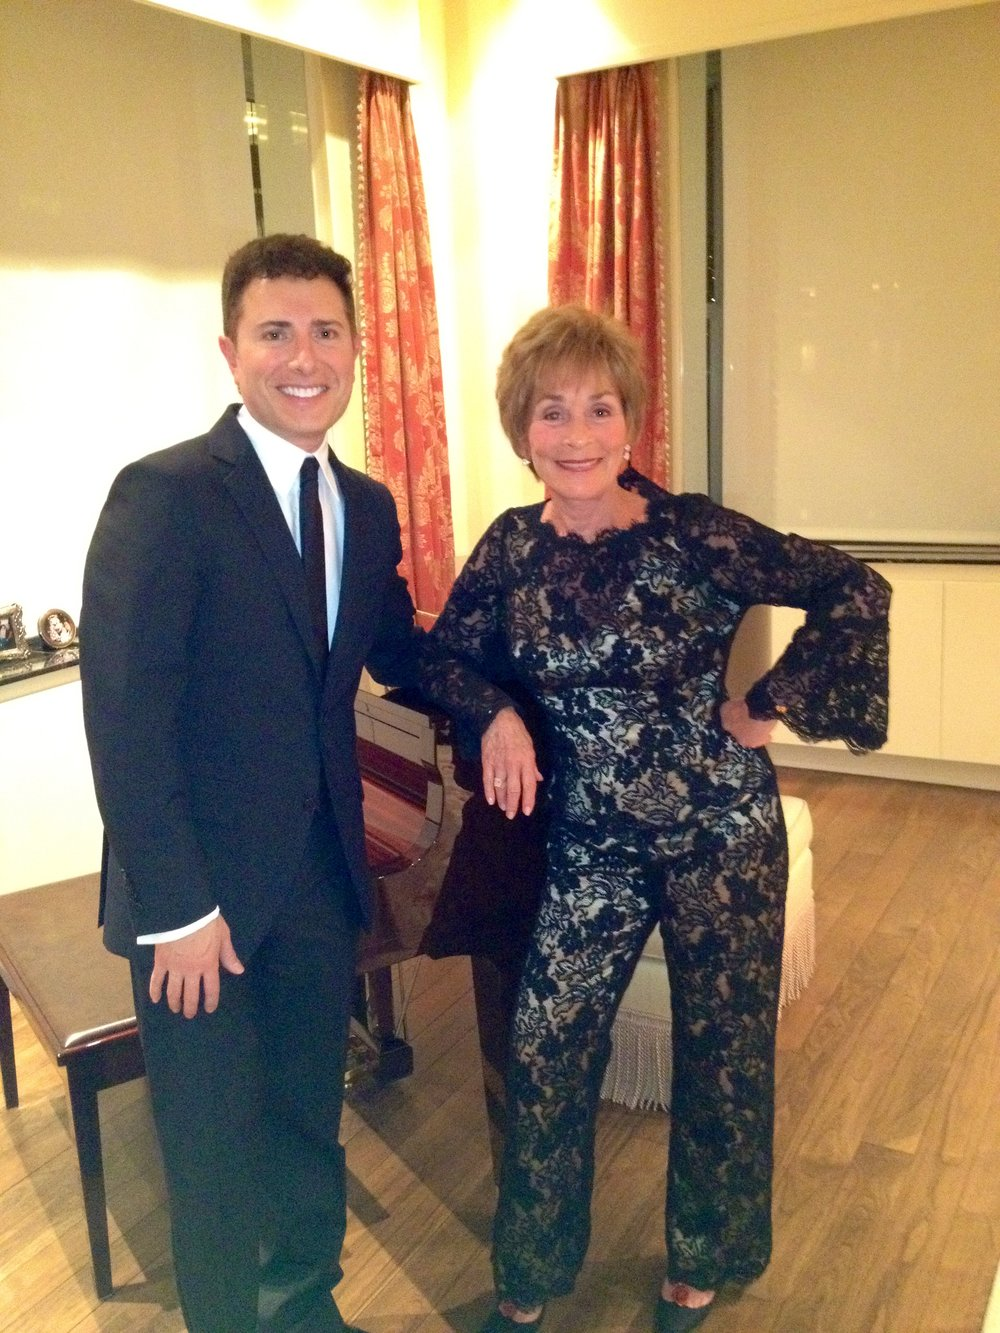 With Judge Judy